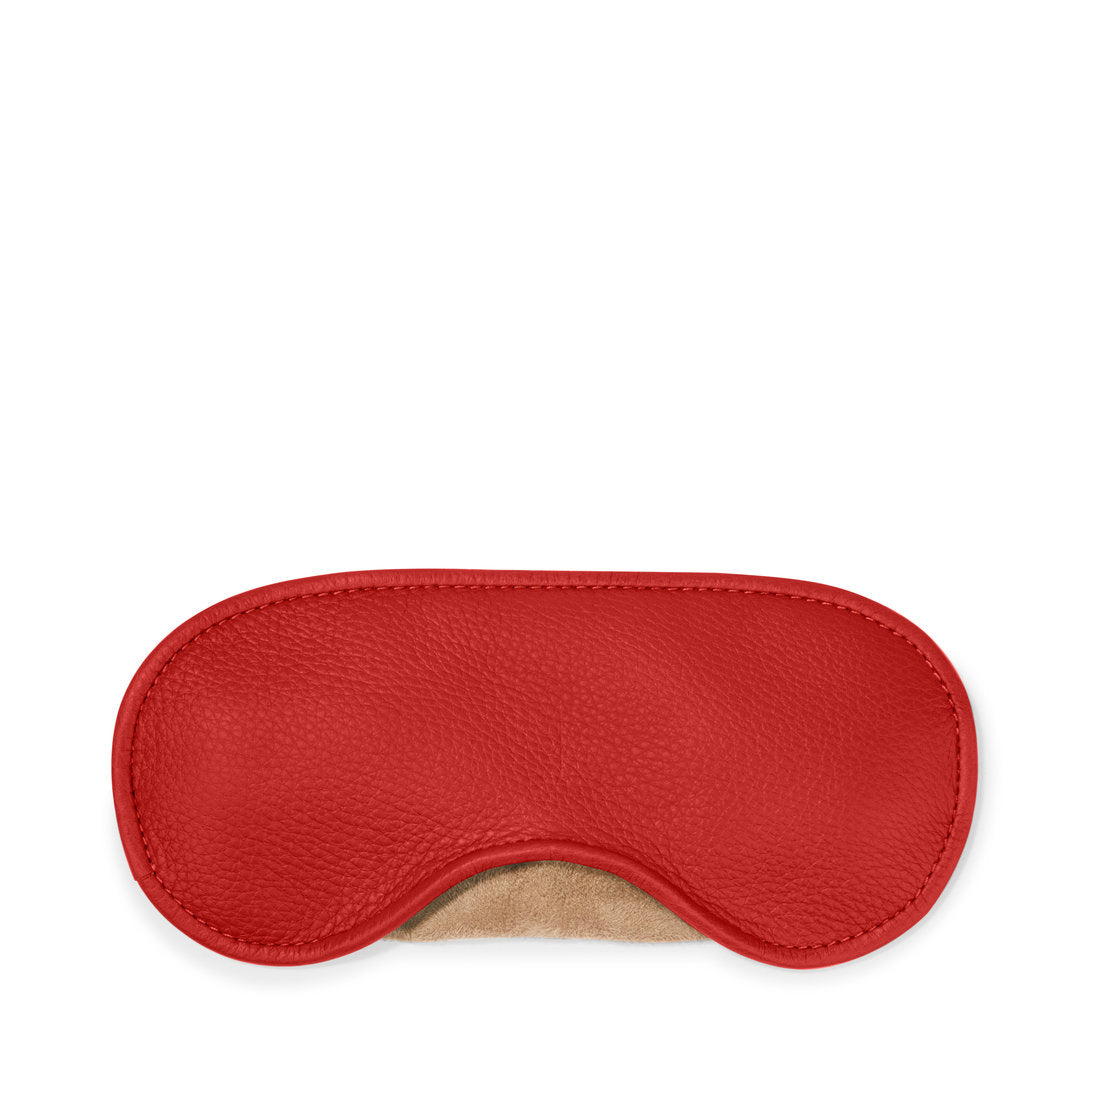 Leather Sleep Mask - Cocus Pocus